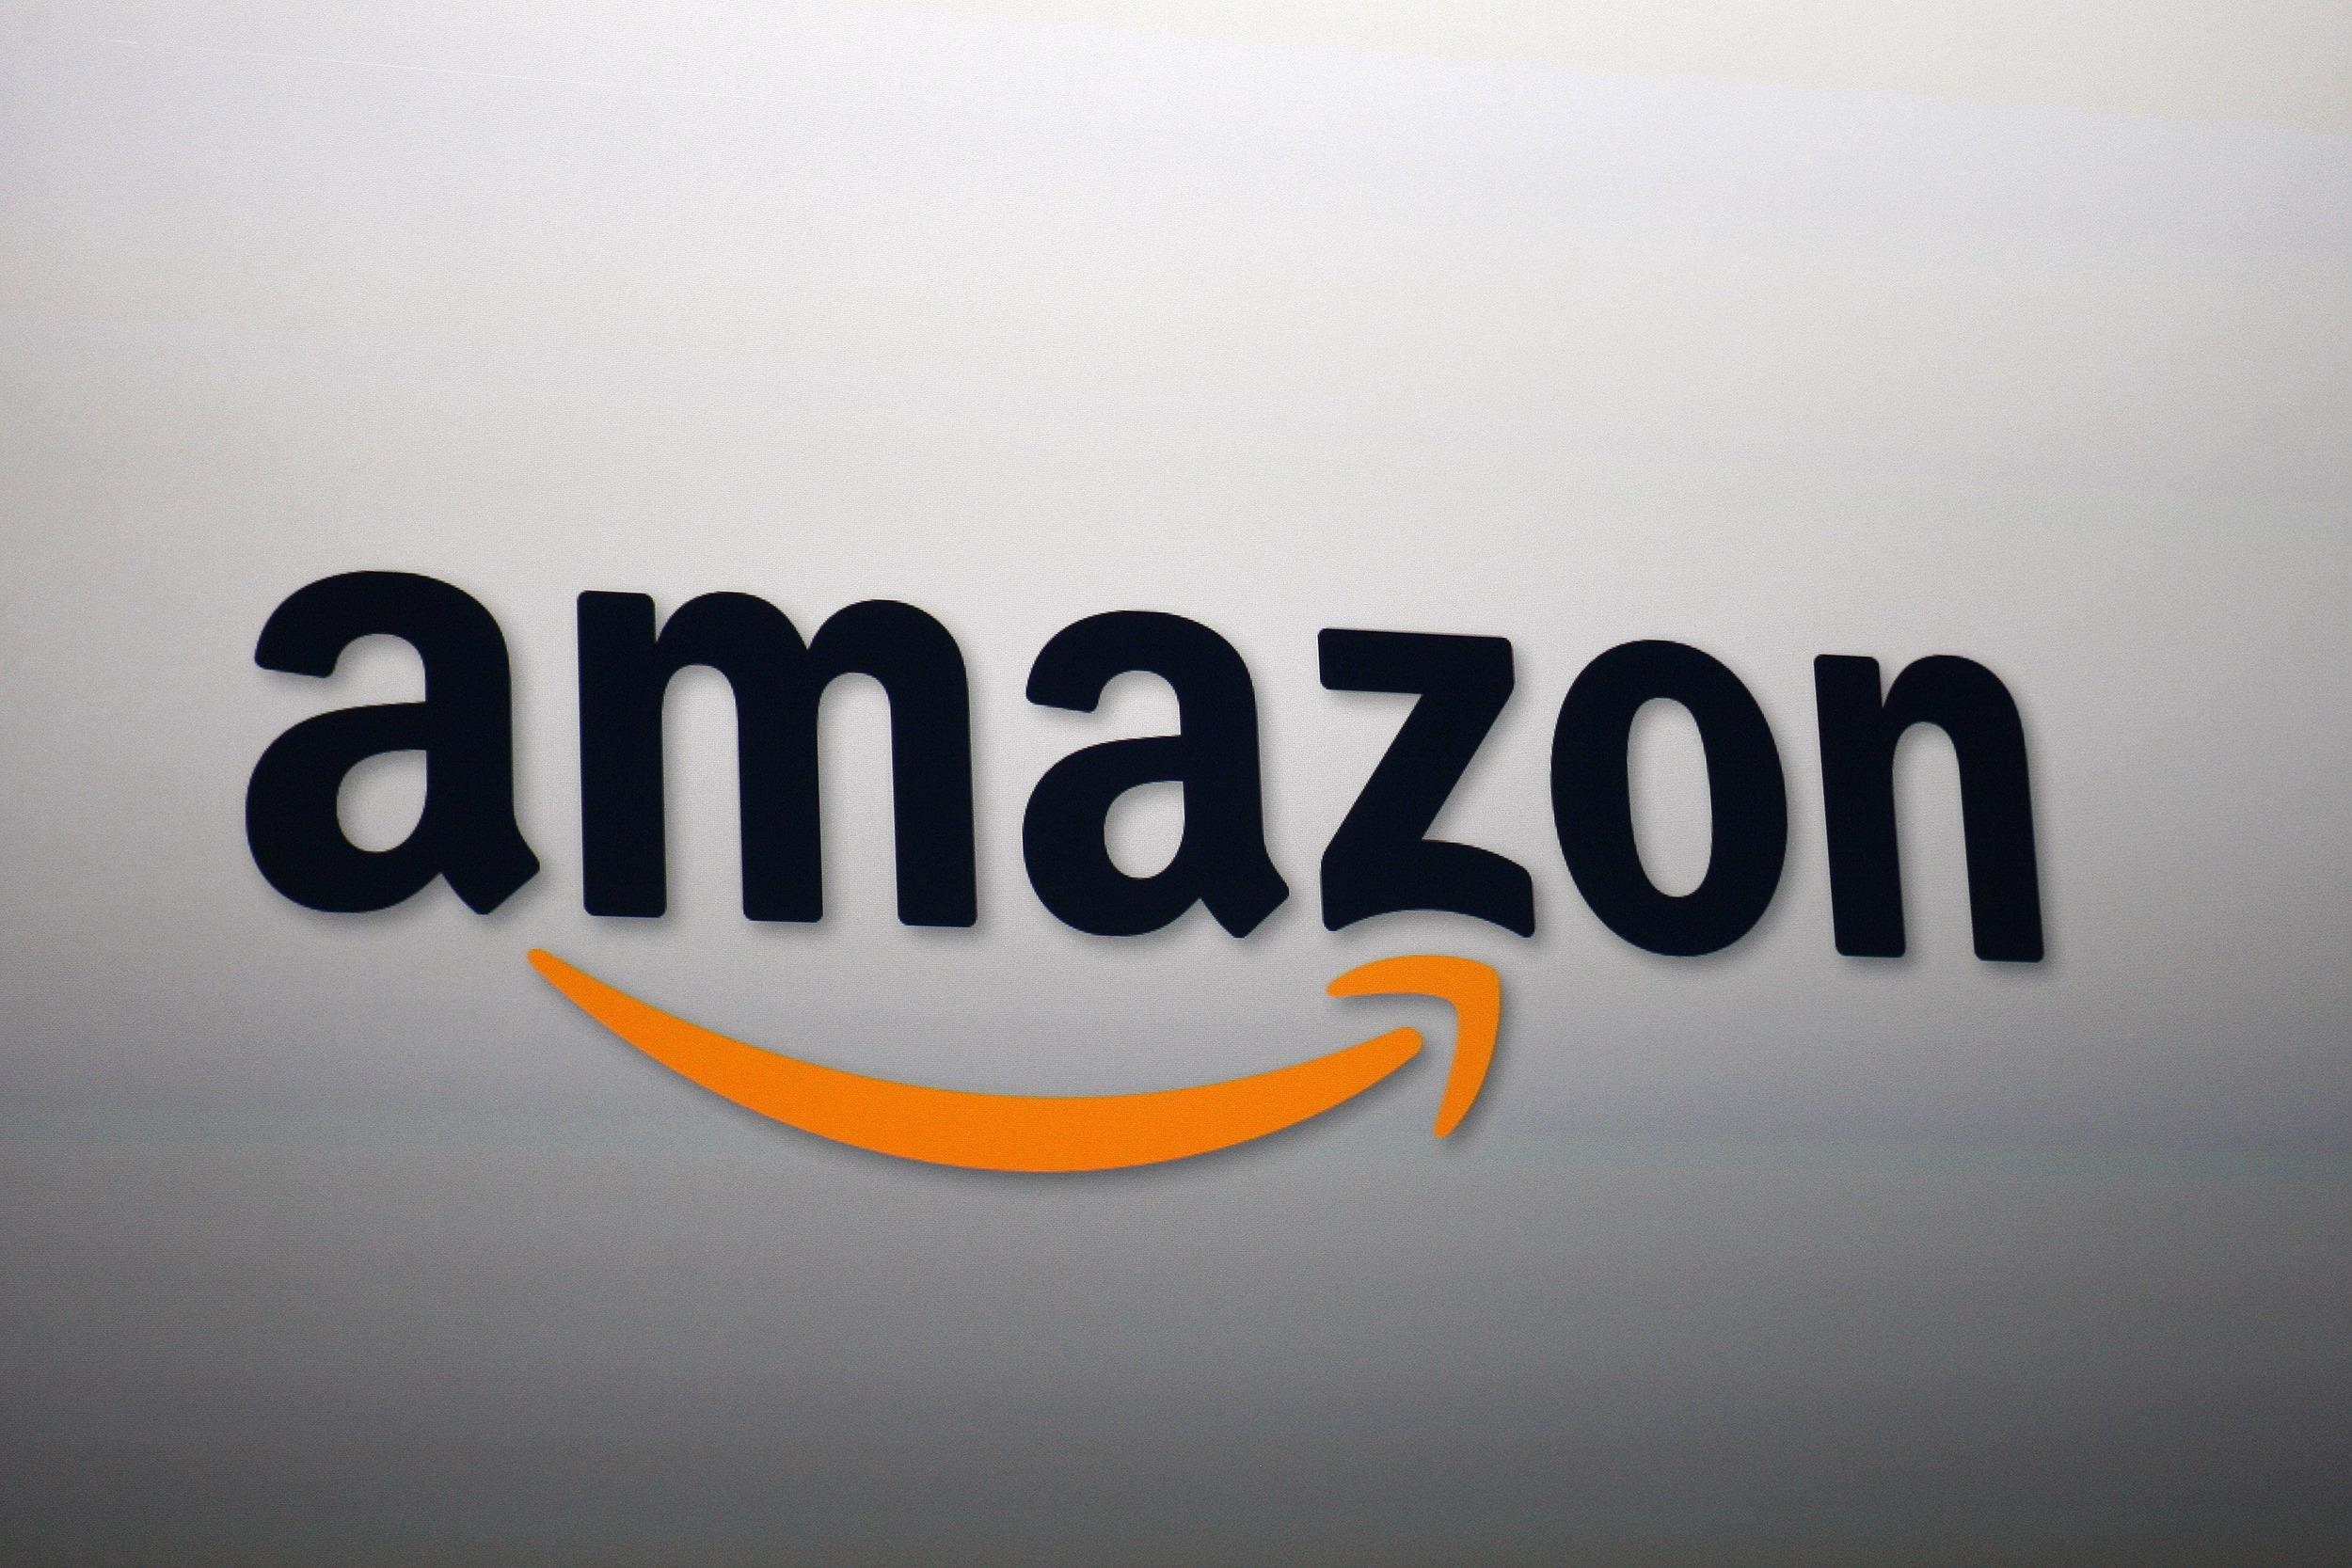 Amazon launched a new streaming music service as part of its $99 Prime subscription service that includes free video streaming and free delivery.